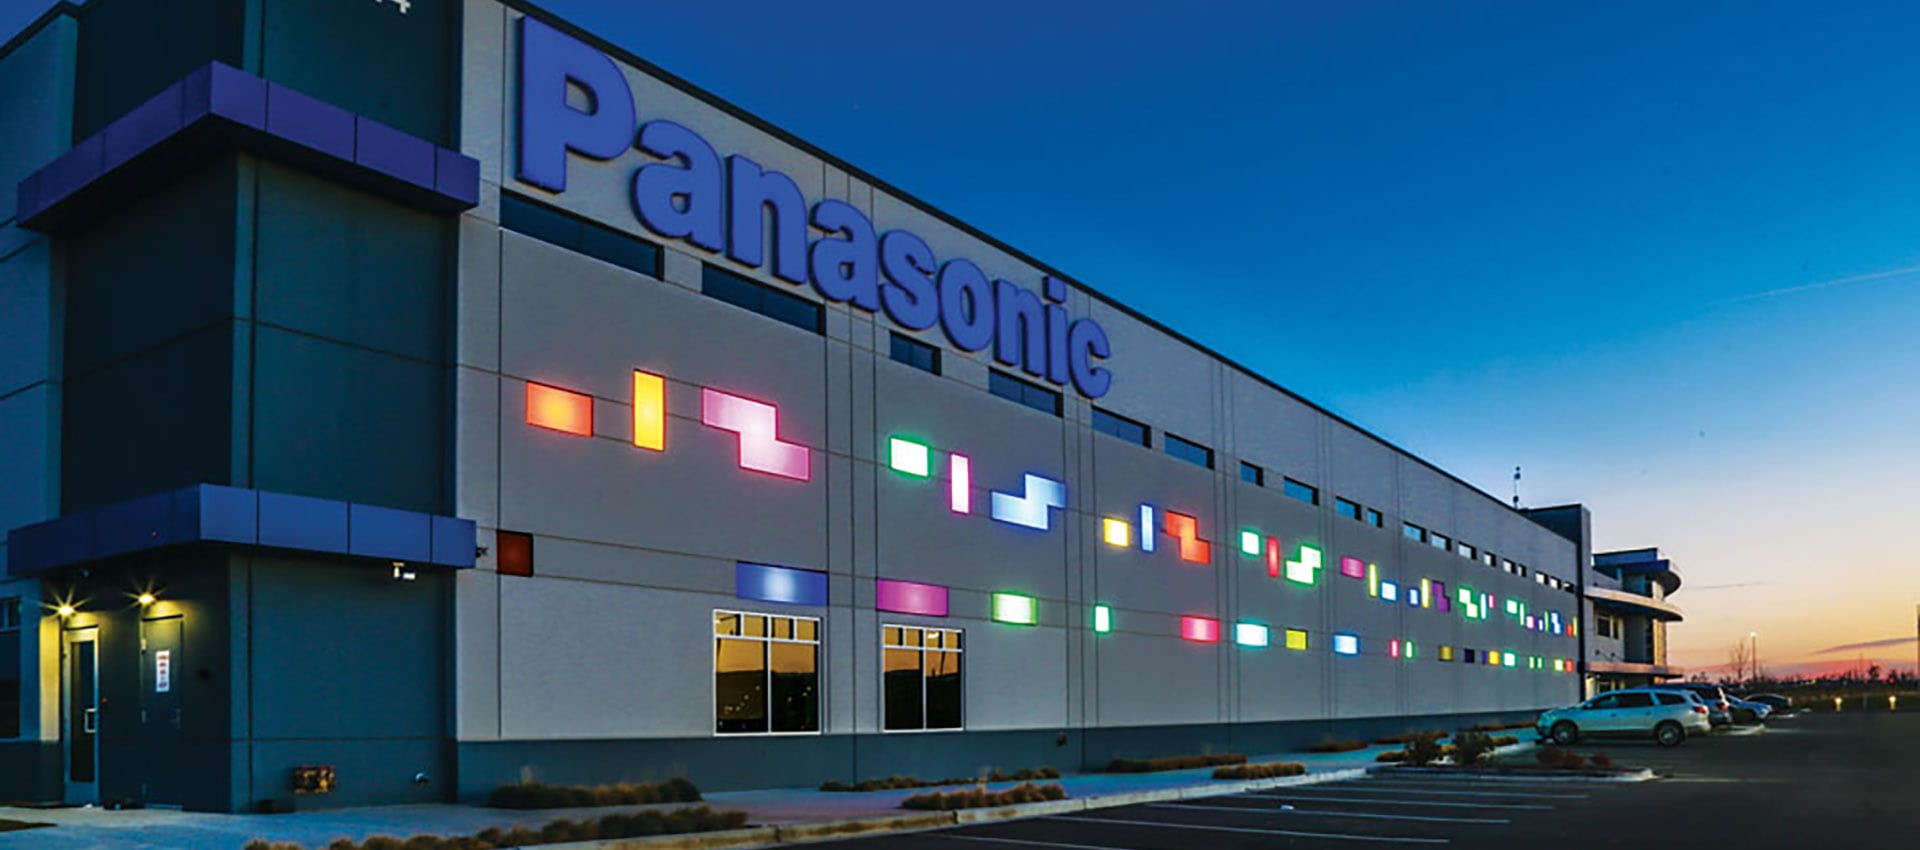 Panasonic Building